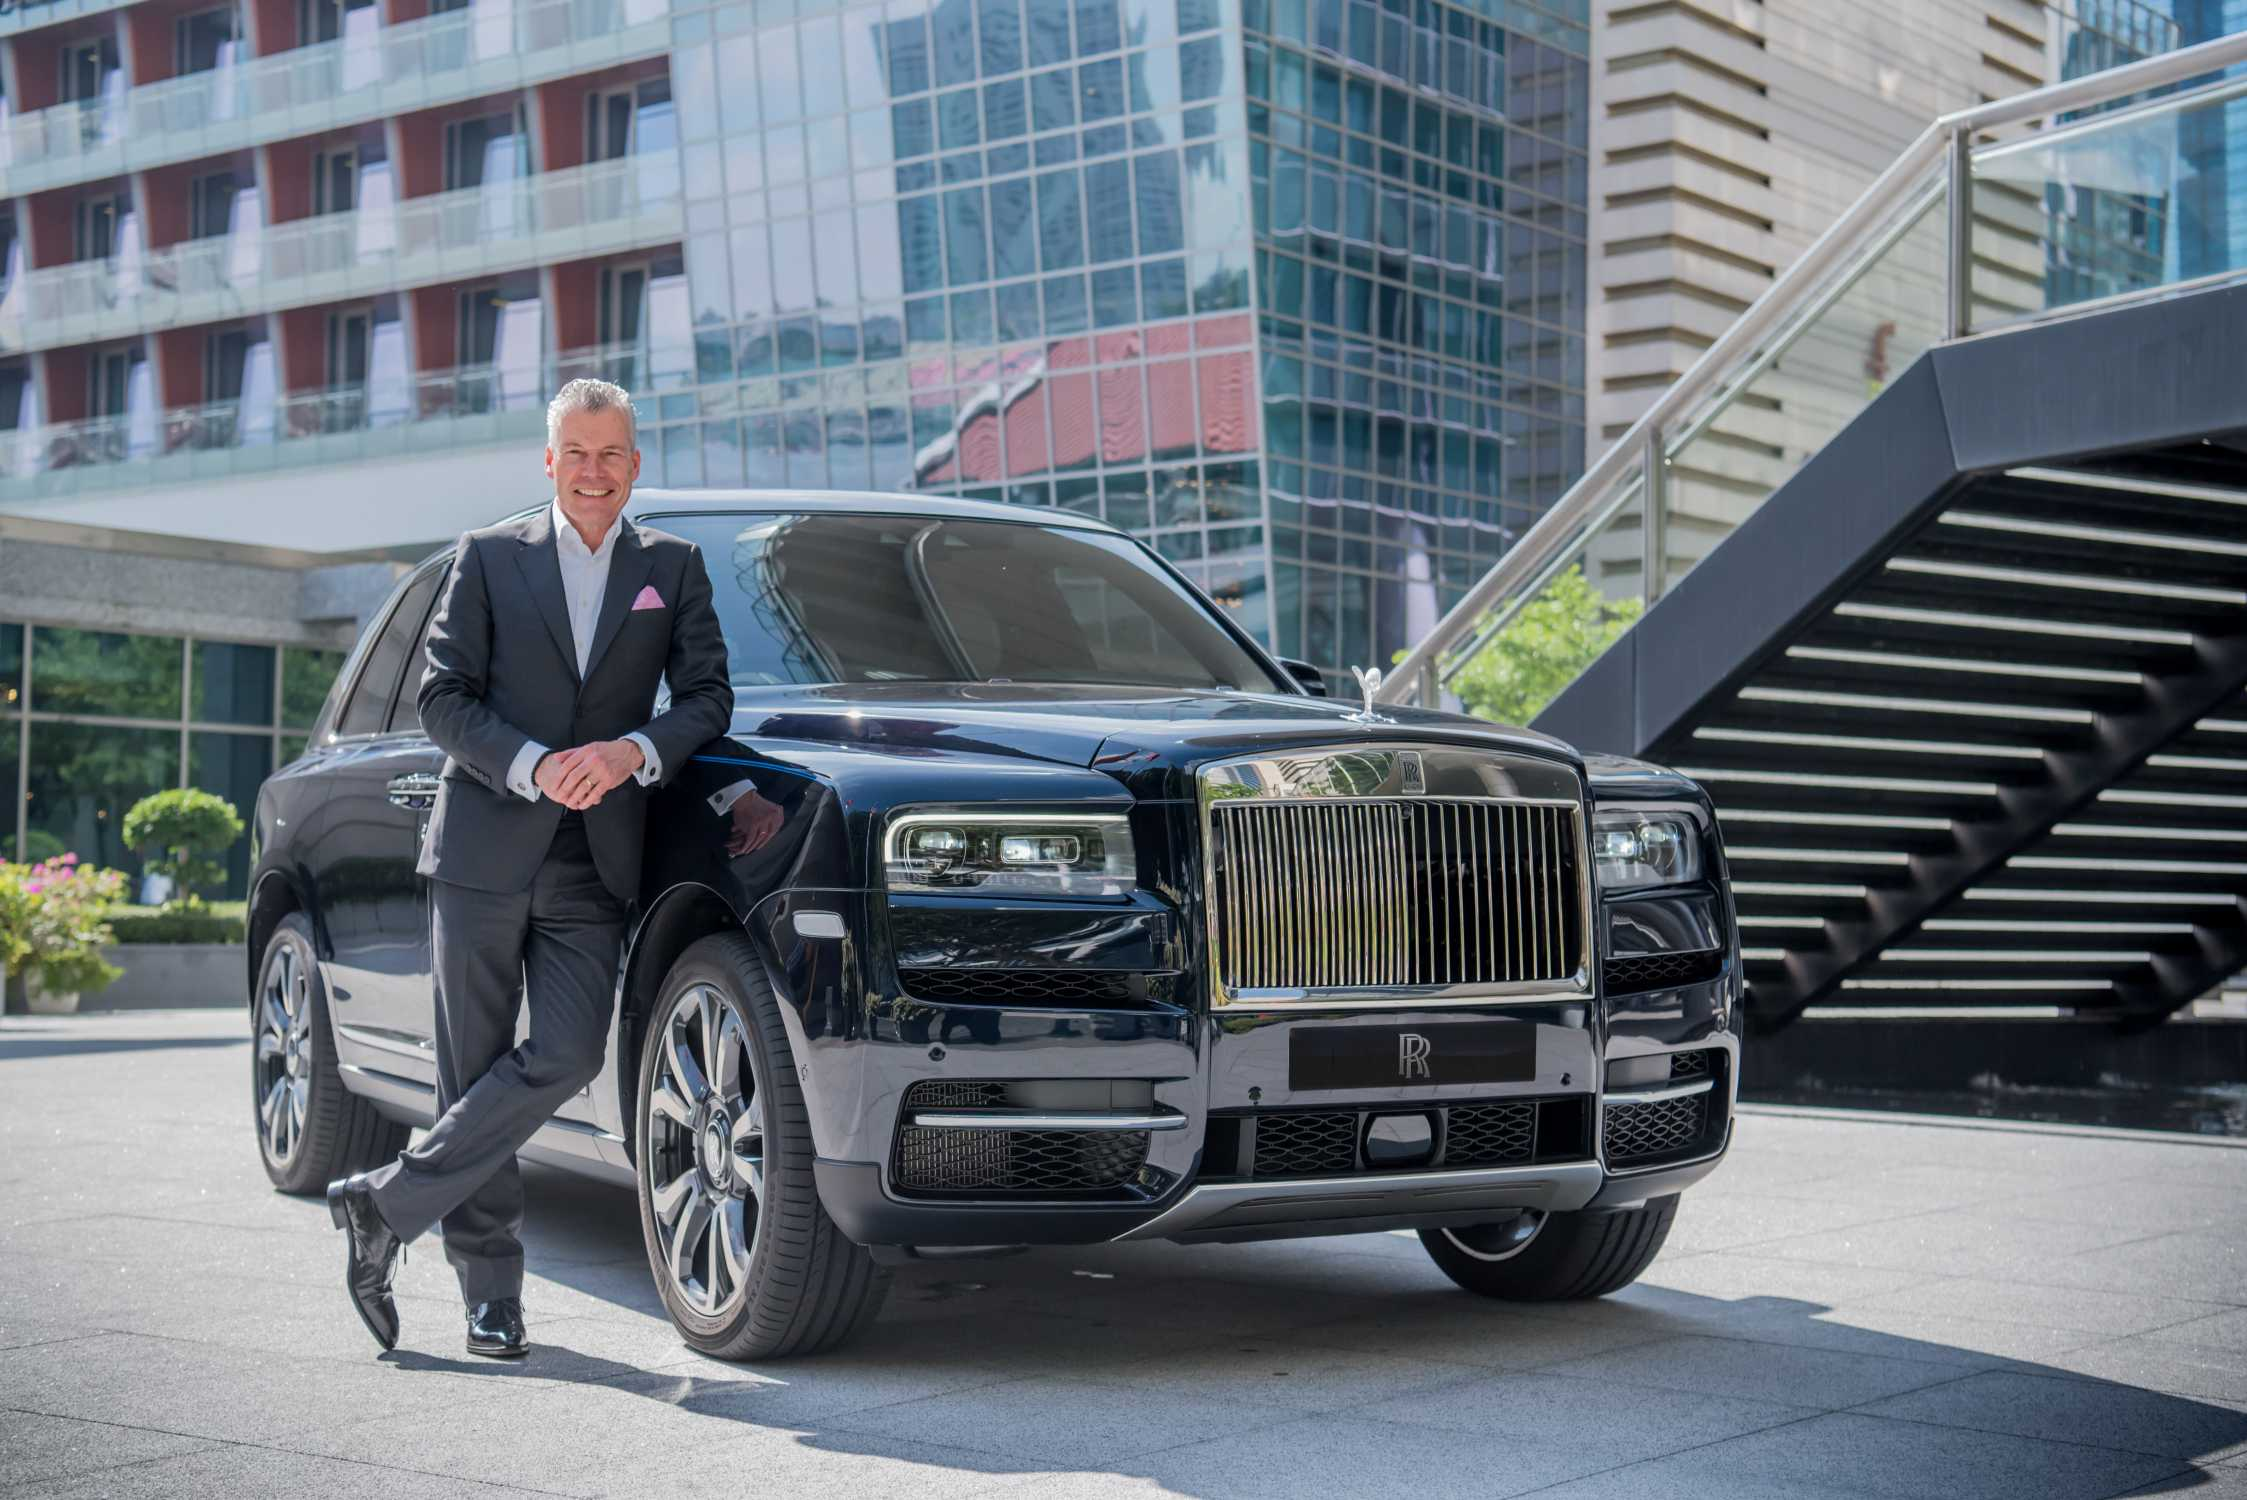 Rolls Royce Motor Cars Delivers Historic Record Result In 2019